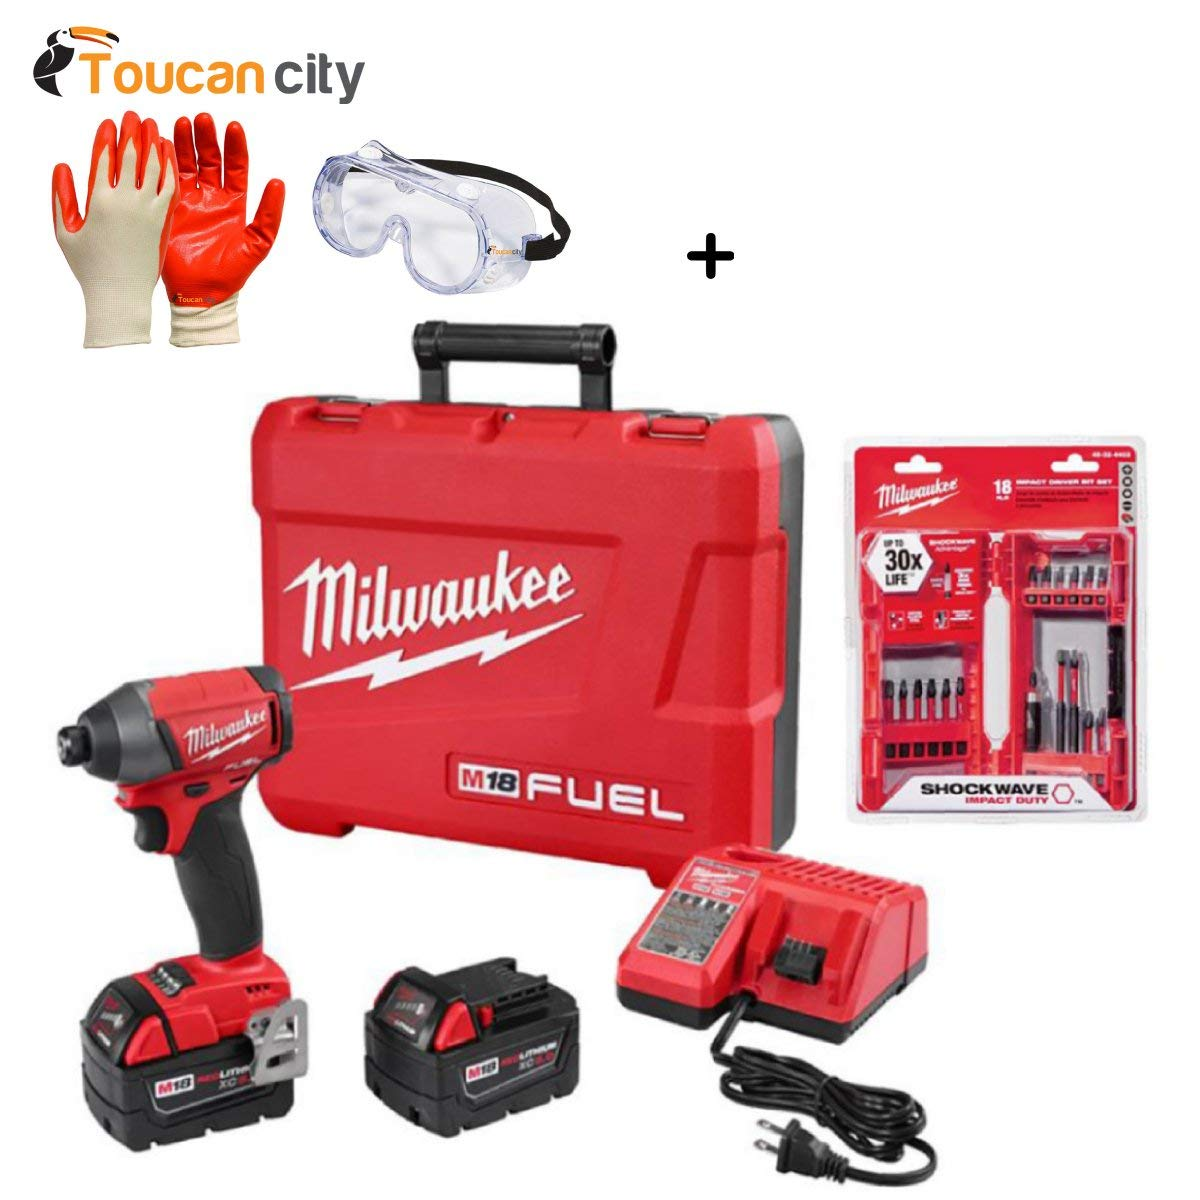 Milwaukee M18 FUEL 18-Volt Lithium-Ion Brushless Cordless 1/4 in. Hex Impact Driver Kit with Shockwave Bit Set (18-Piece) 2753-22-48-32-4403 and Toucan City Nitrile Dip Gloves (5-Pack), Safety Goggle